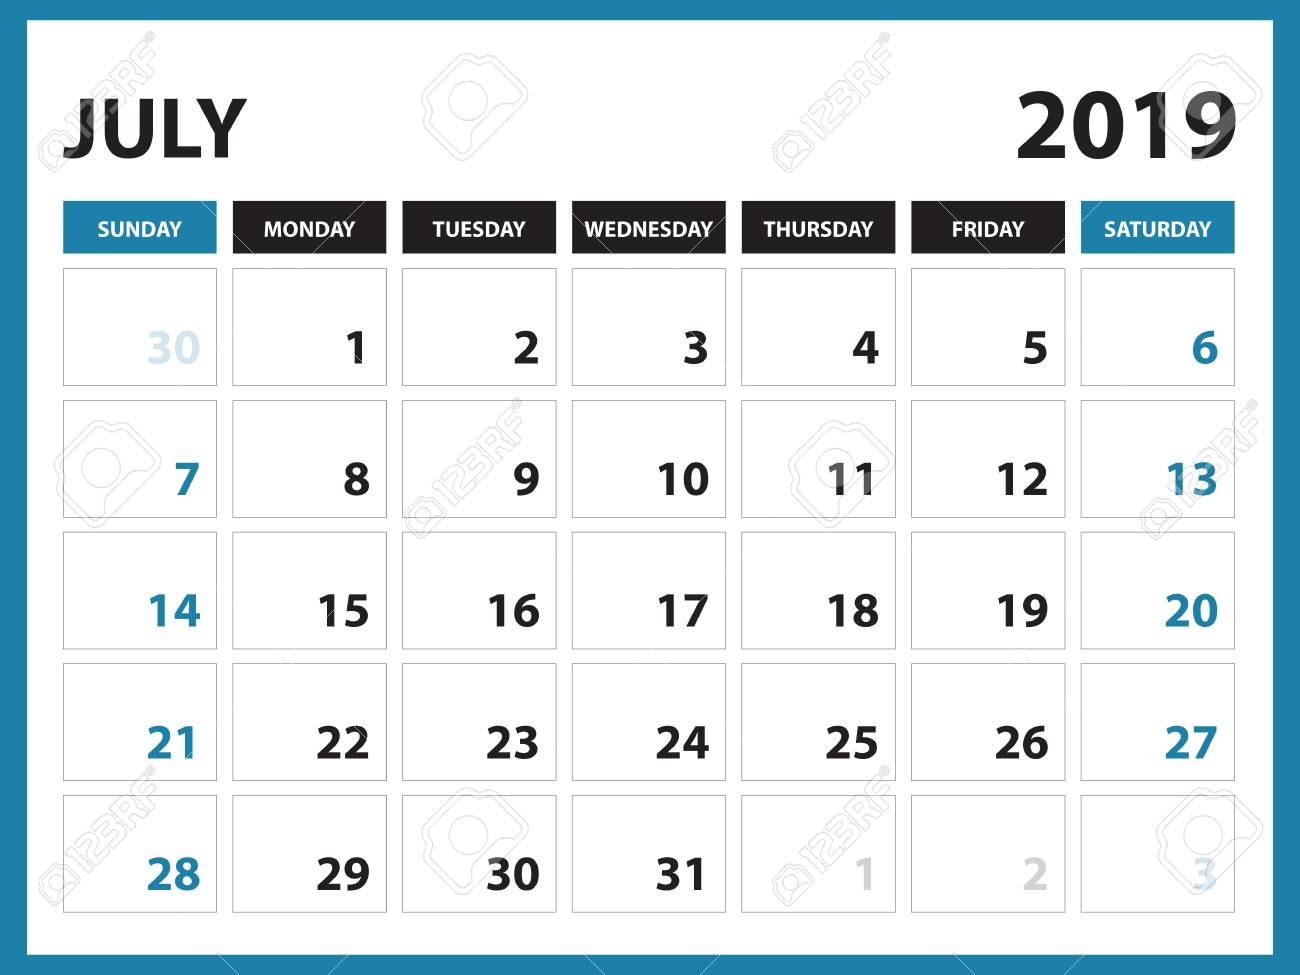 picture about July Printable Calendar titled Table calendar for JULY 2019 template, Printable calendar, Planner..